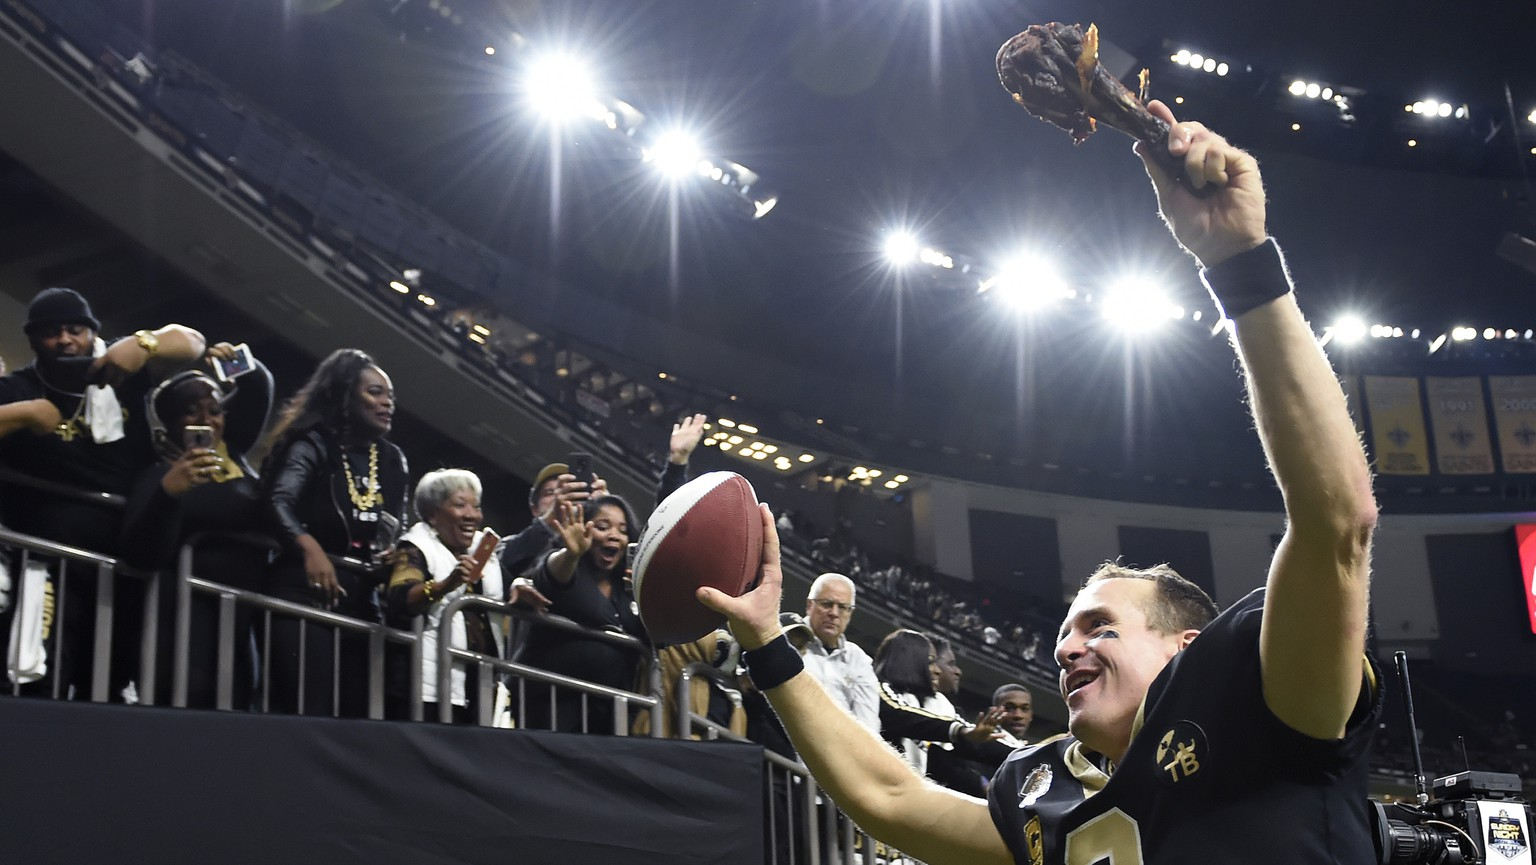 New Orleans Saints quarterback Drew Brees (9) responds to the fans with a turkey drumstick as he runs off the field Thanksgiving night after an NFL football game against the Atlanta Falcons in New Orleans, Thursday, Nov. 22, 2018. The Saints won 31-17. (AP Photo/Bill Feig)